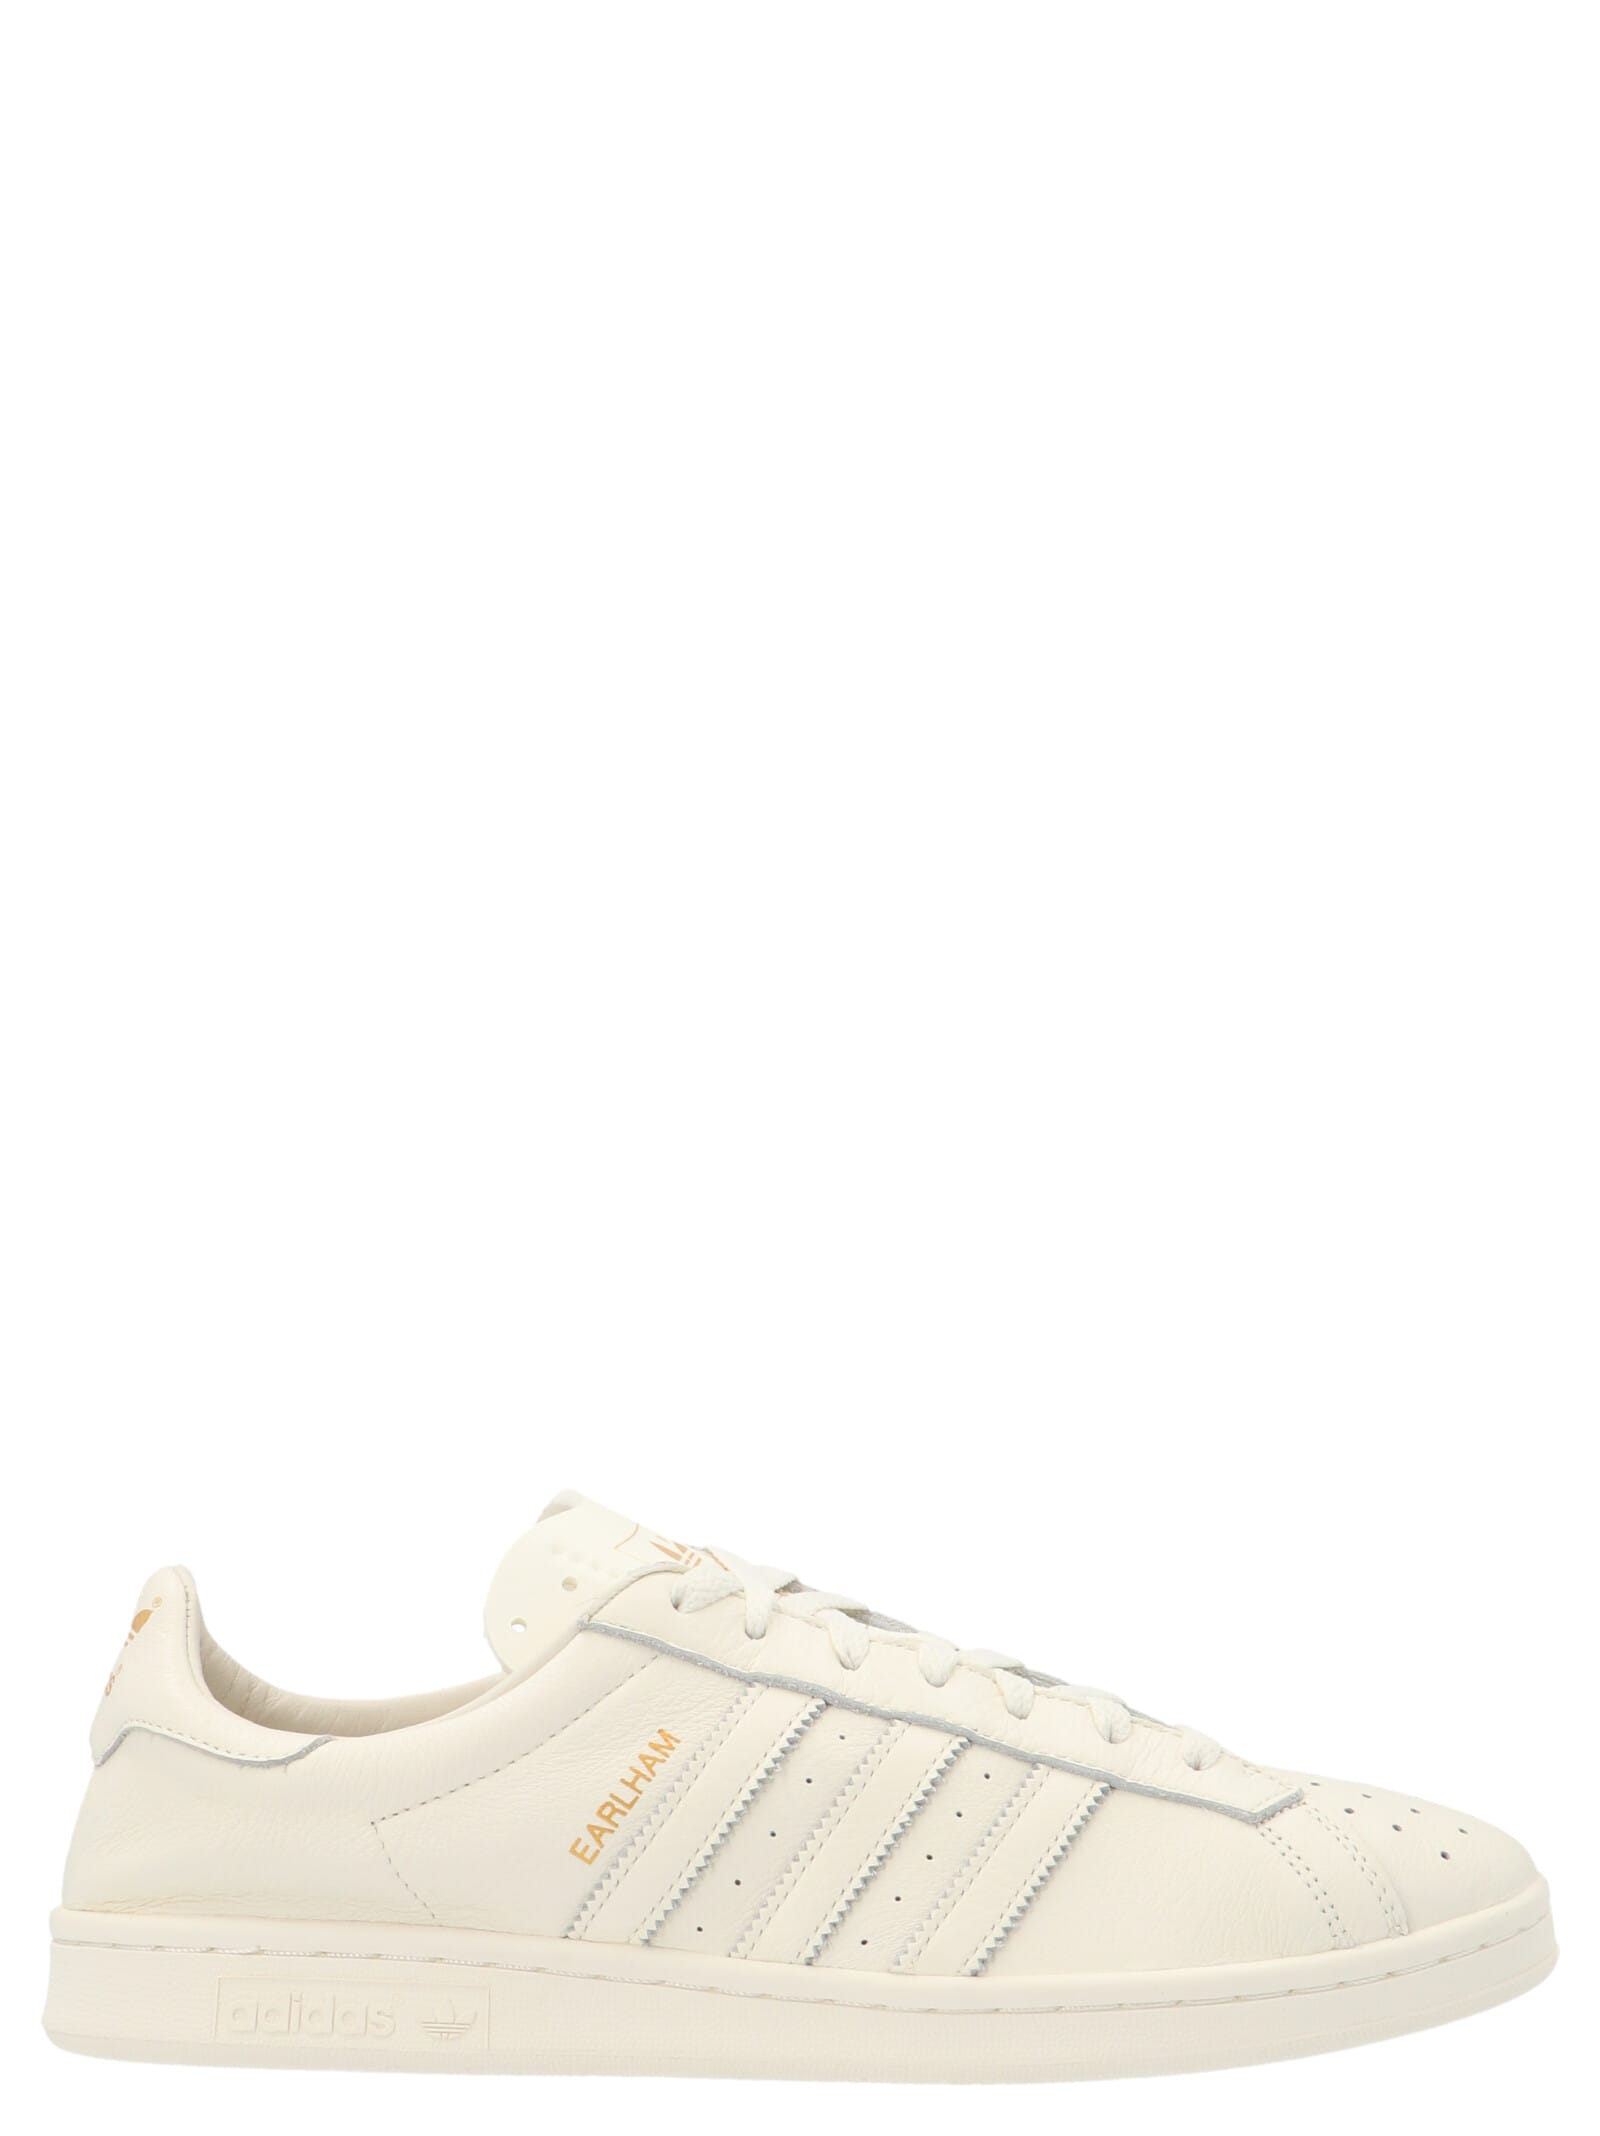 Adidas Originals Leathers EARLHAM SHOES